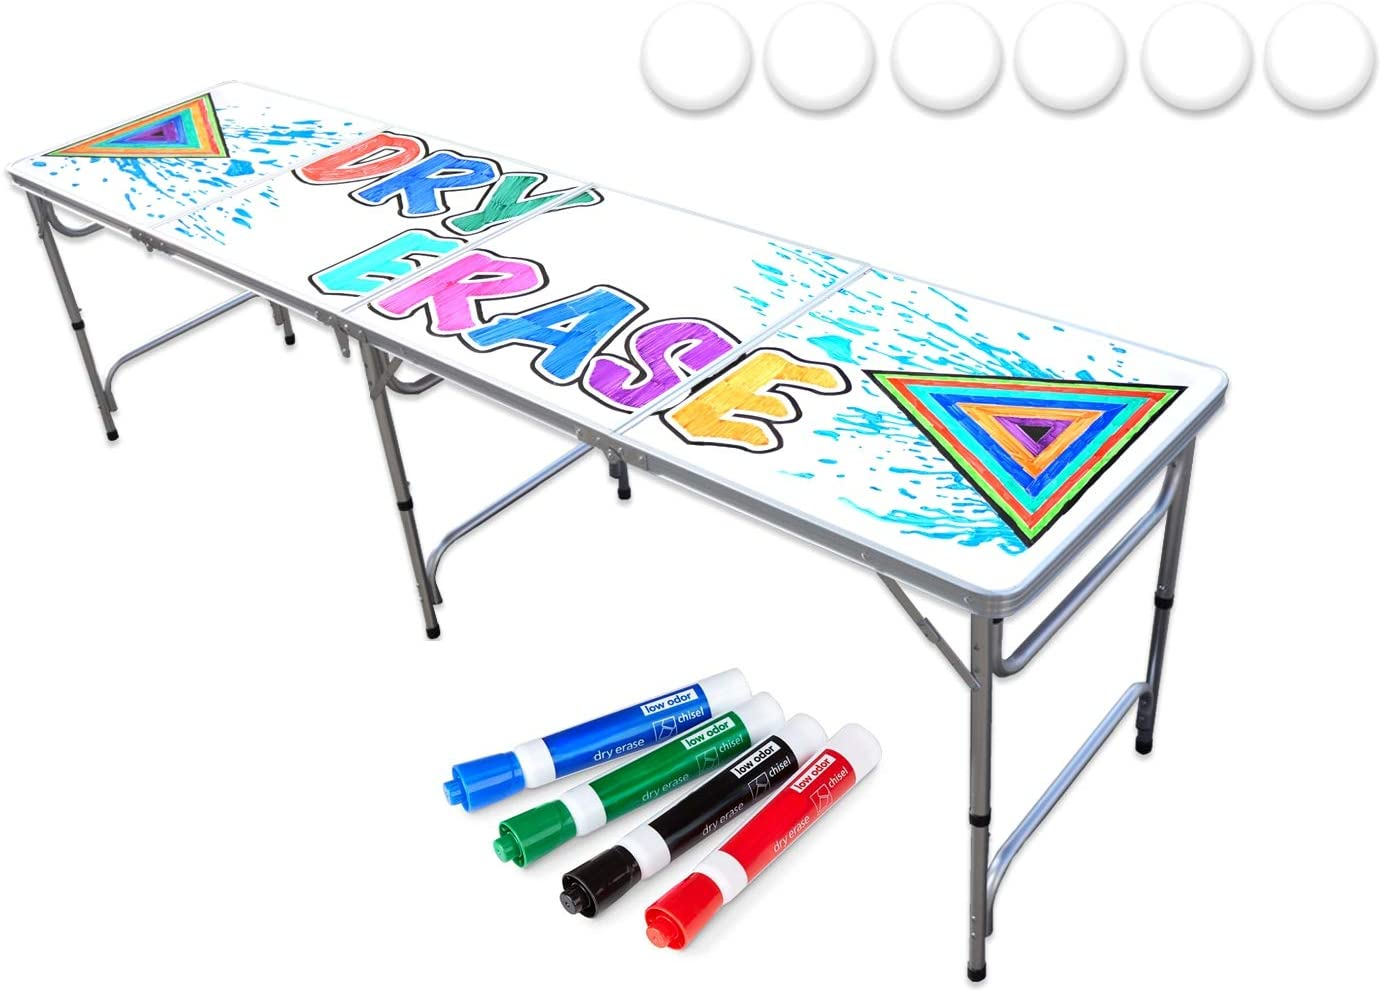 #10.Party Foldable Beer Pong Tables